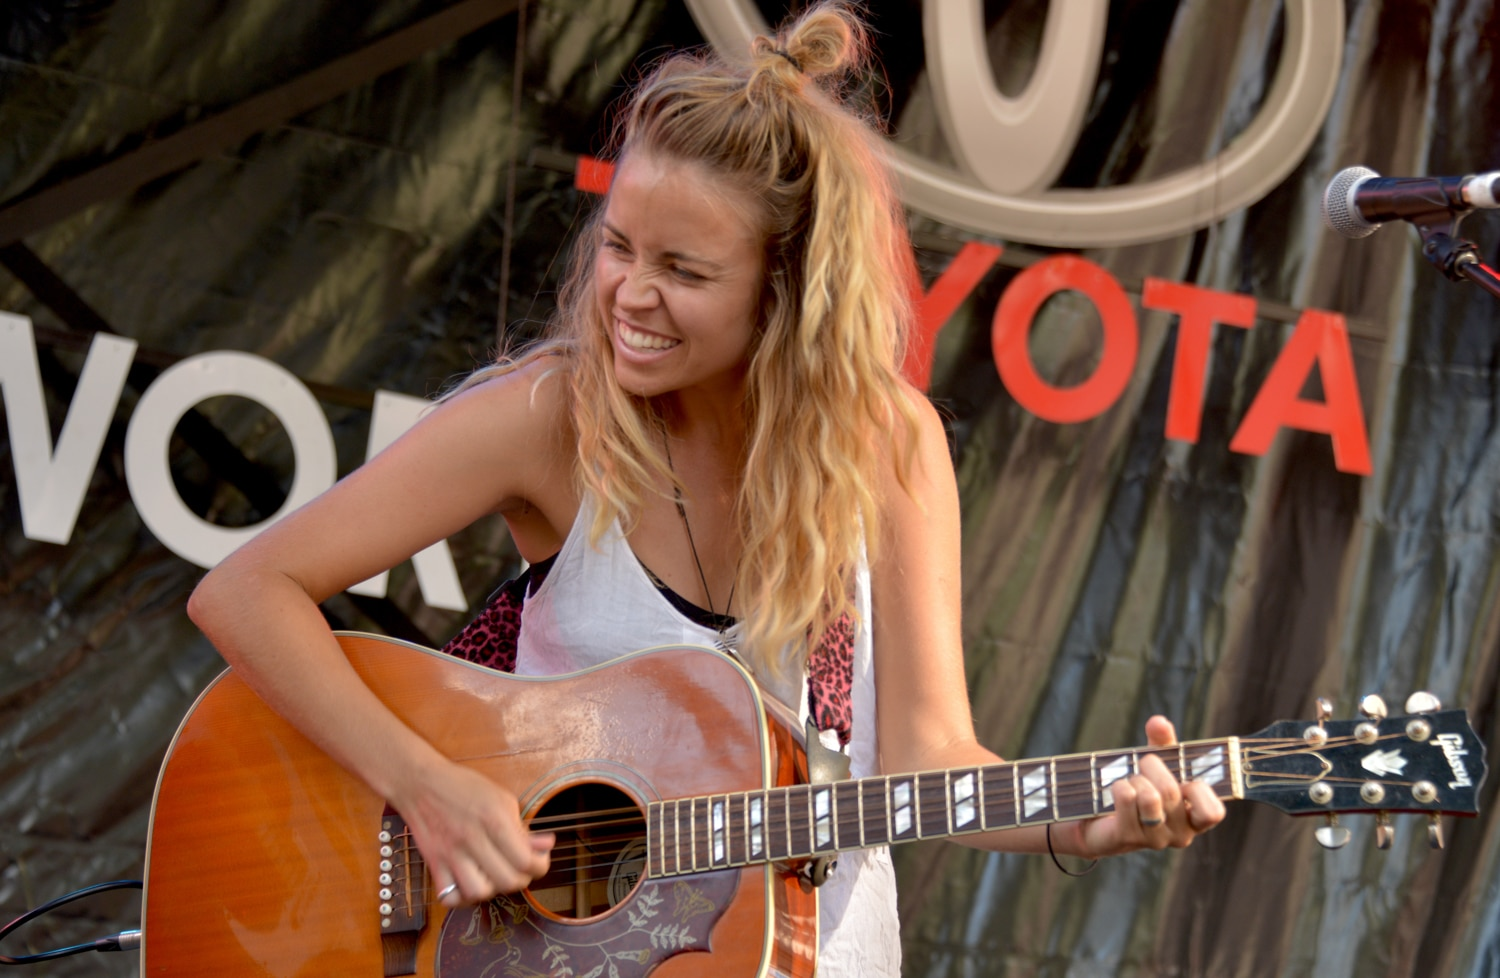 7 Reasons to Put The Toyota Country Music Festival on Your Bucket List